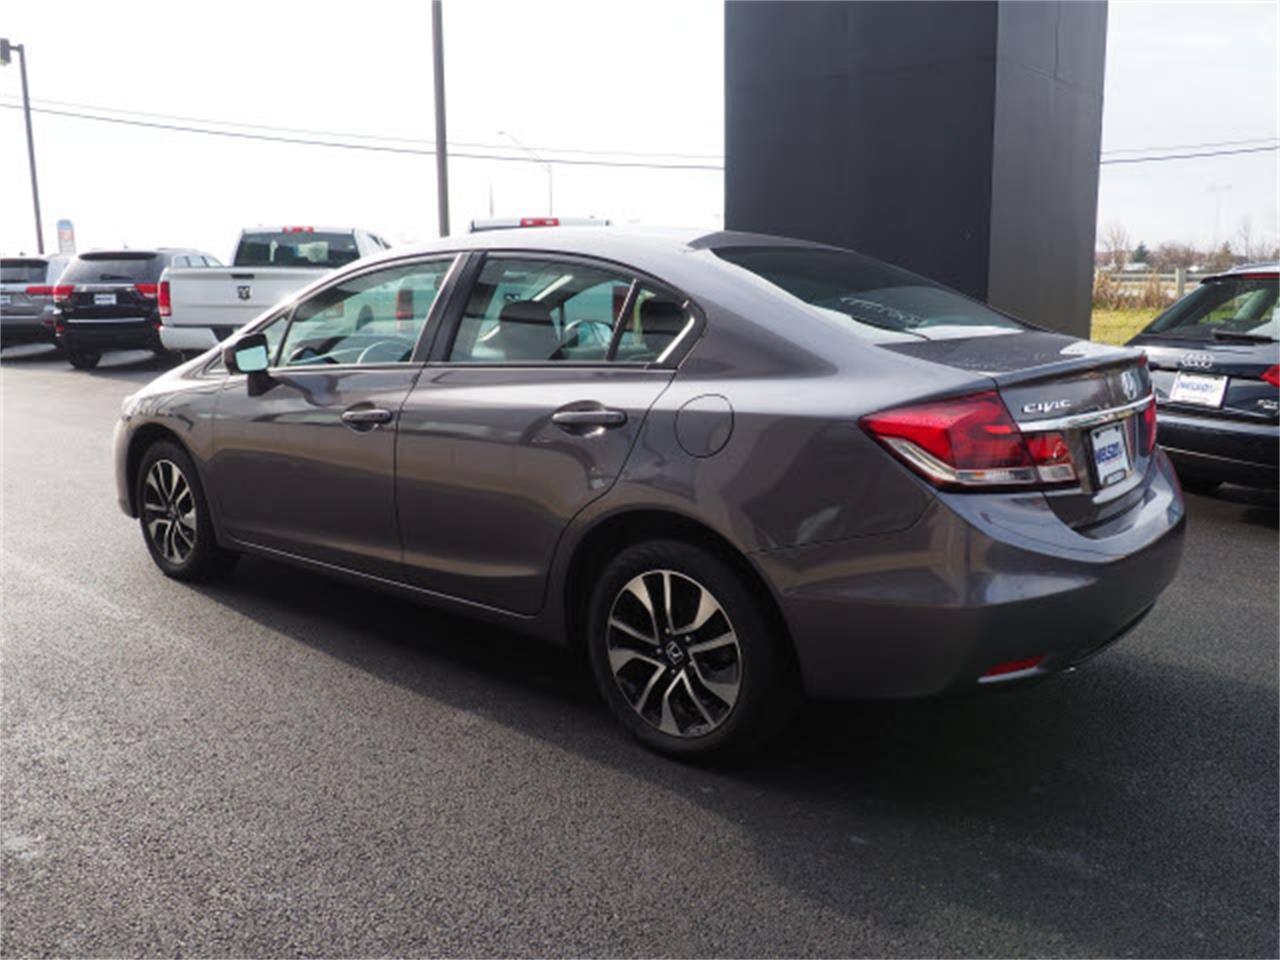 Large Picture of '15 Civic - MFZ4